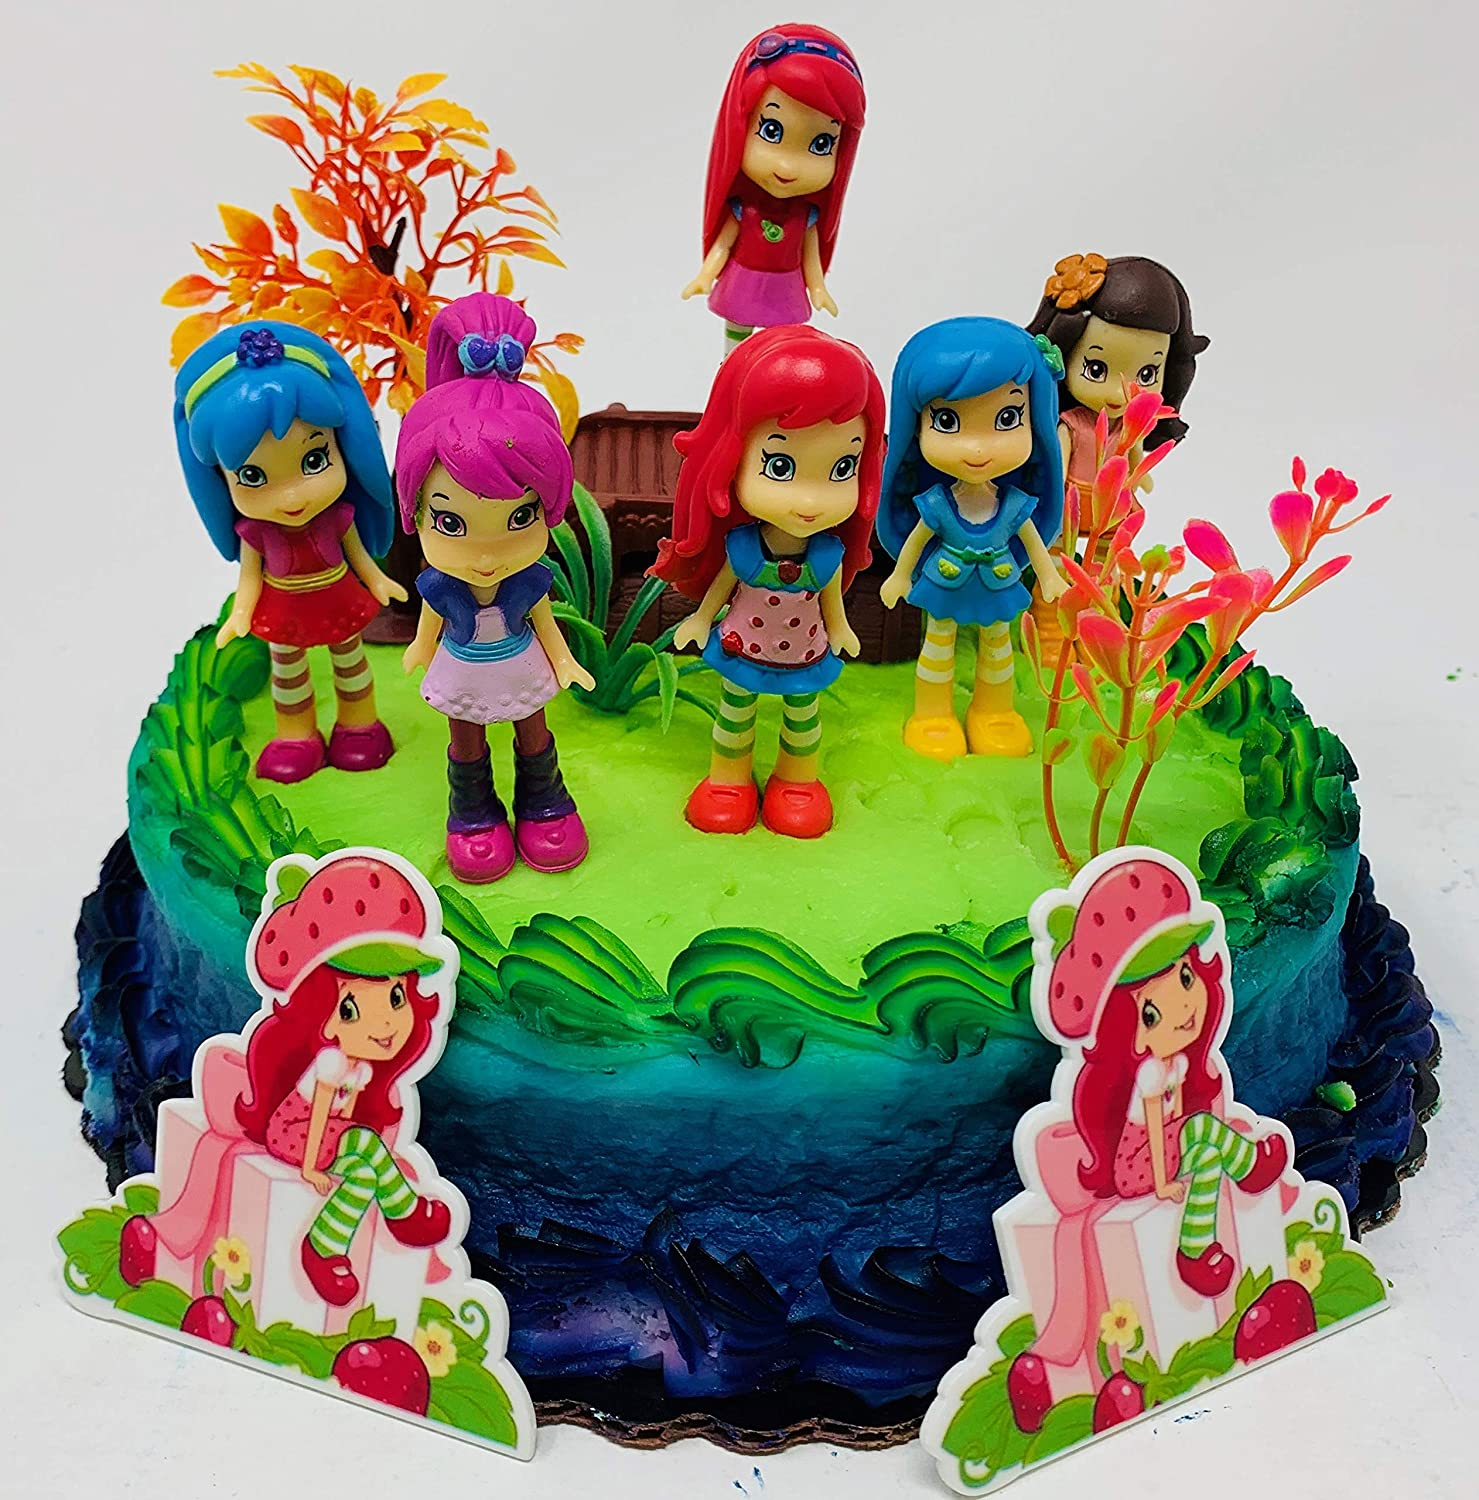 Sensational Amazon Com Strawberry Shortcake And Friends Birthday Cake Topper Funny Birthday Cards Online Elaedamsfinfo